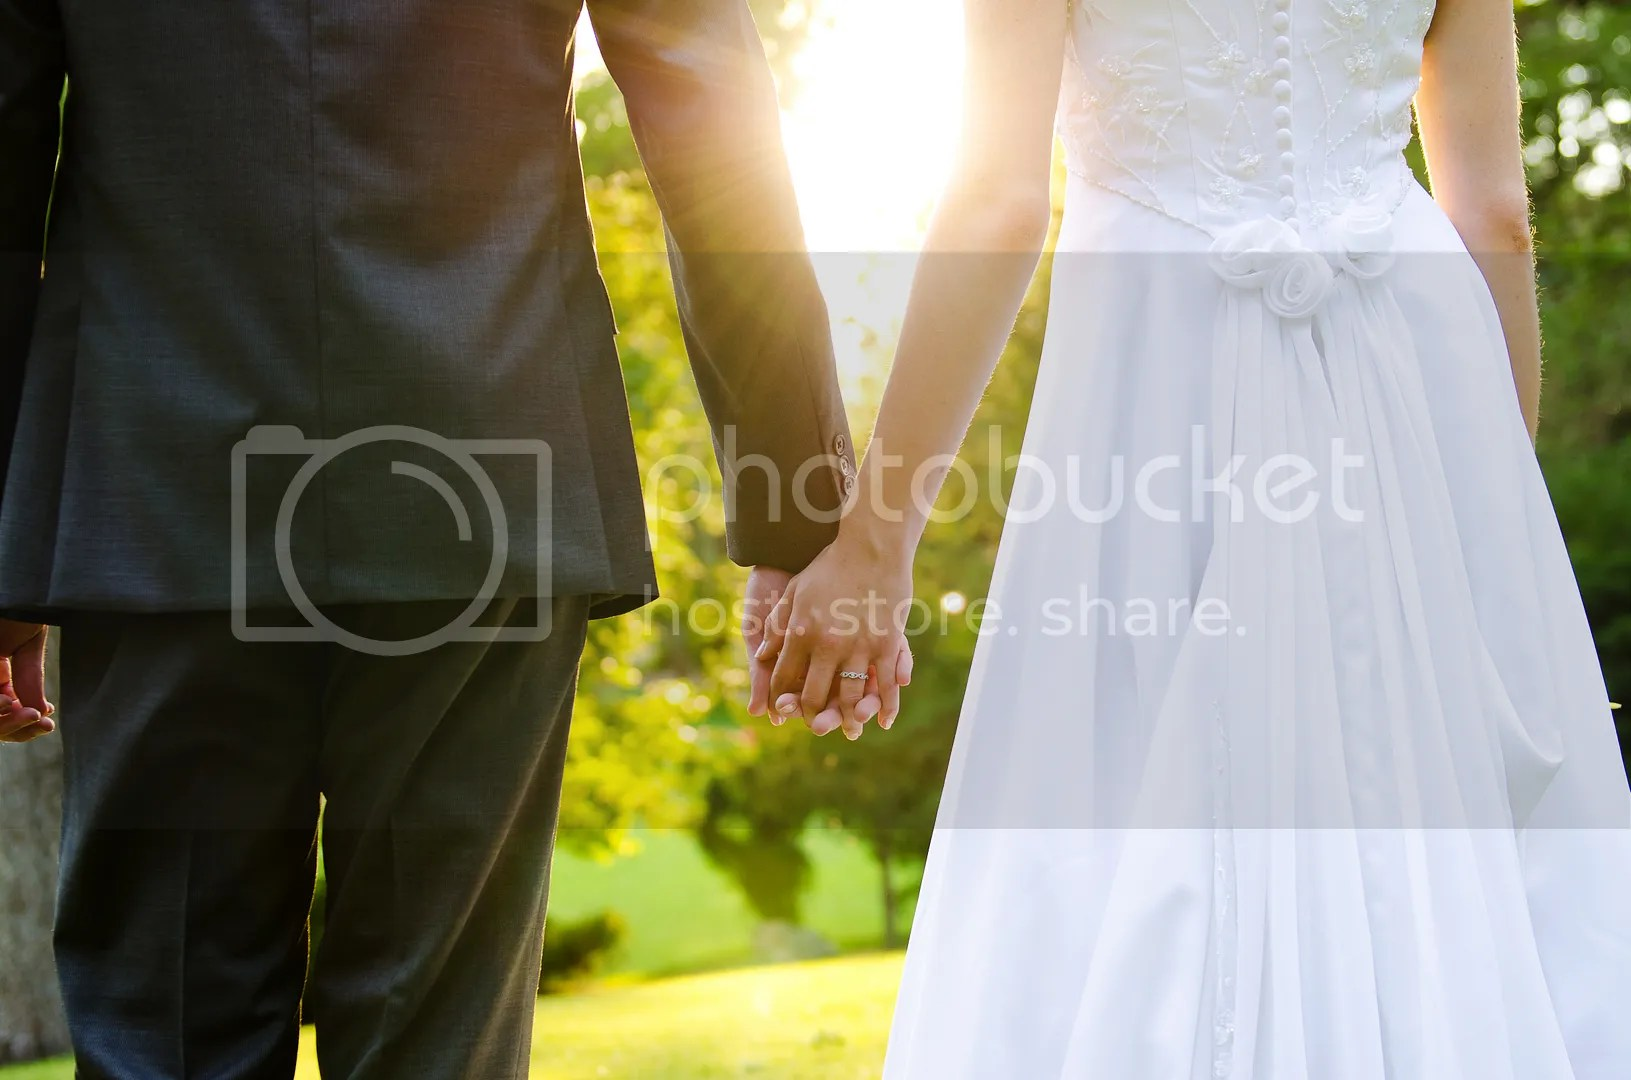 photo SampJHutchingsBridals_KaraSimmons_34_zpsbf9f6450.jpg